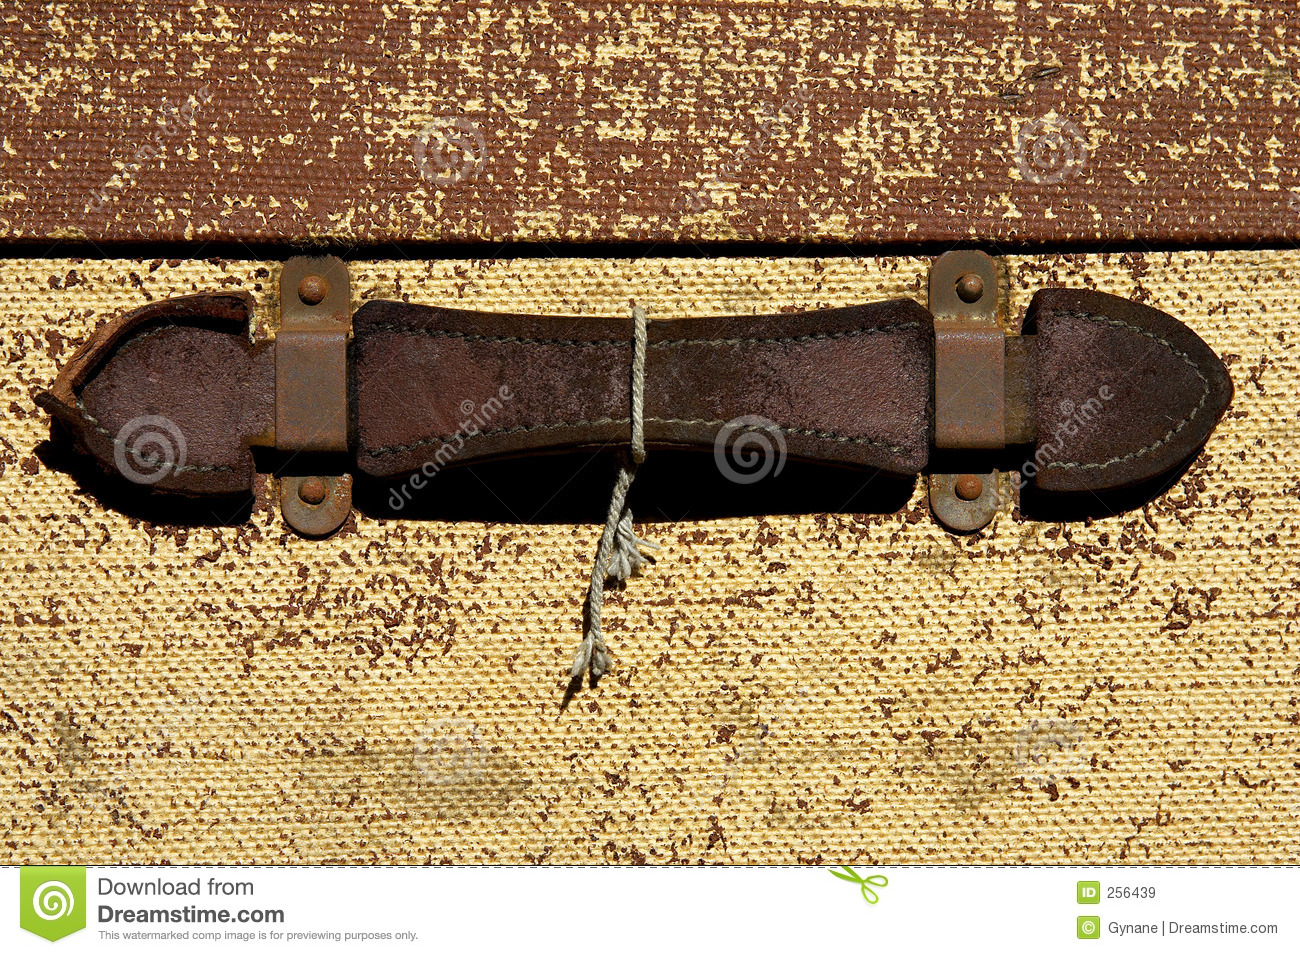 Old Leather Suitcase With Handle Stock Photo - Image: 256440